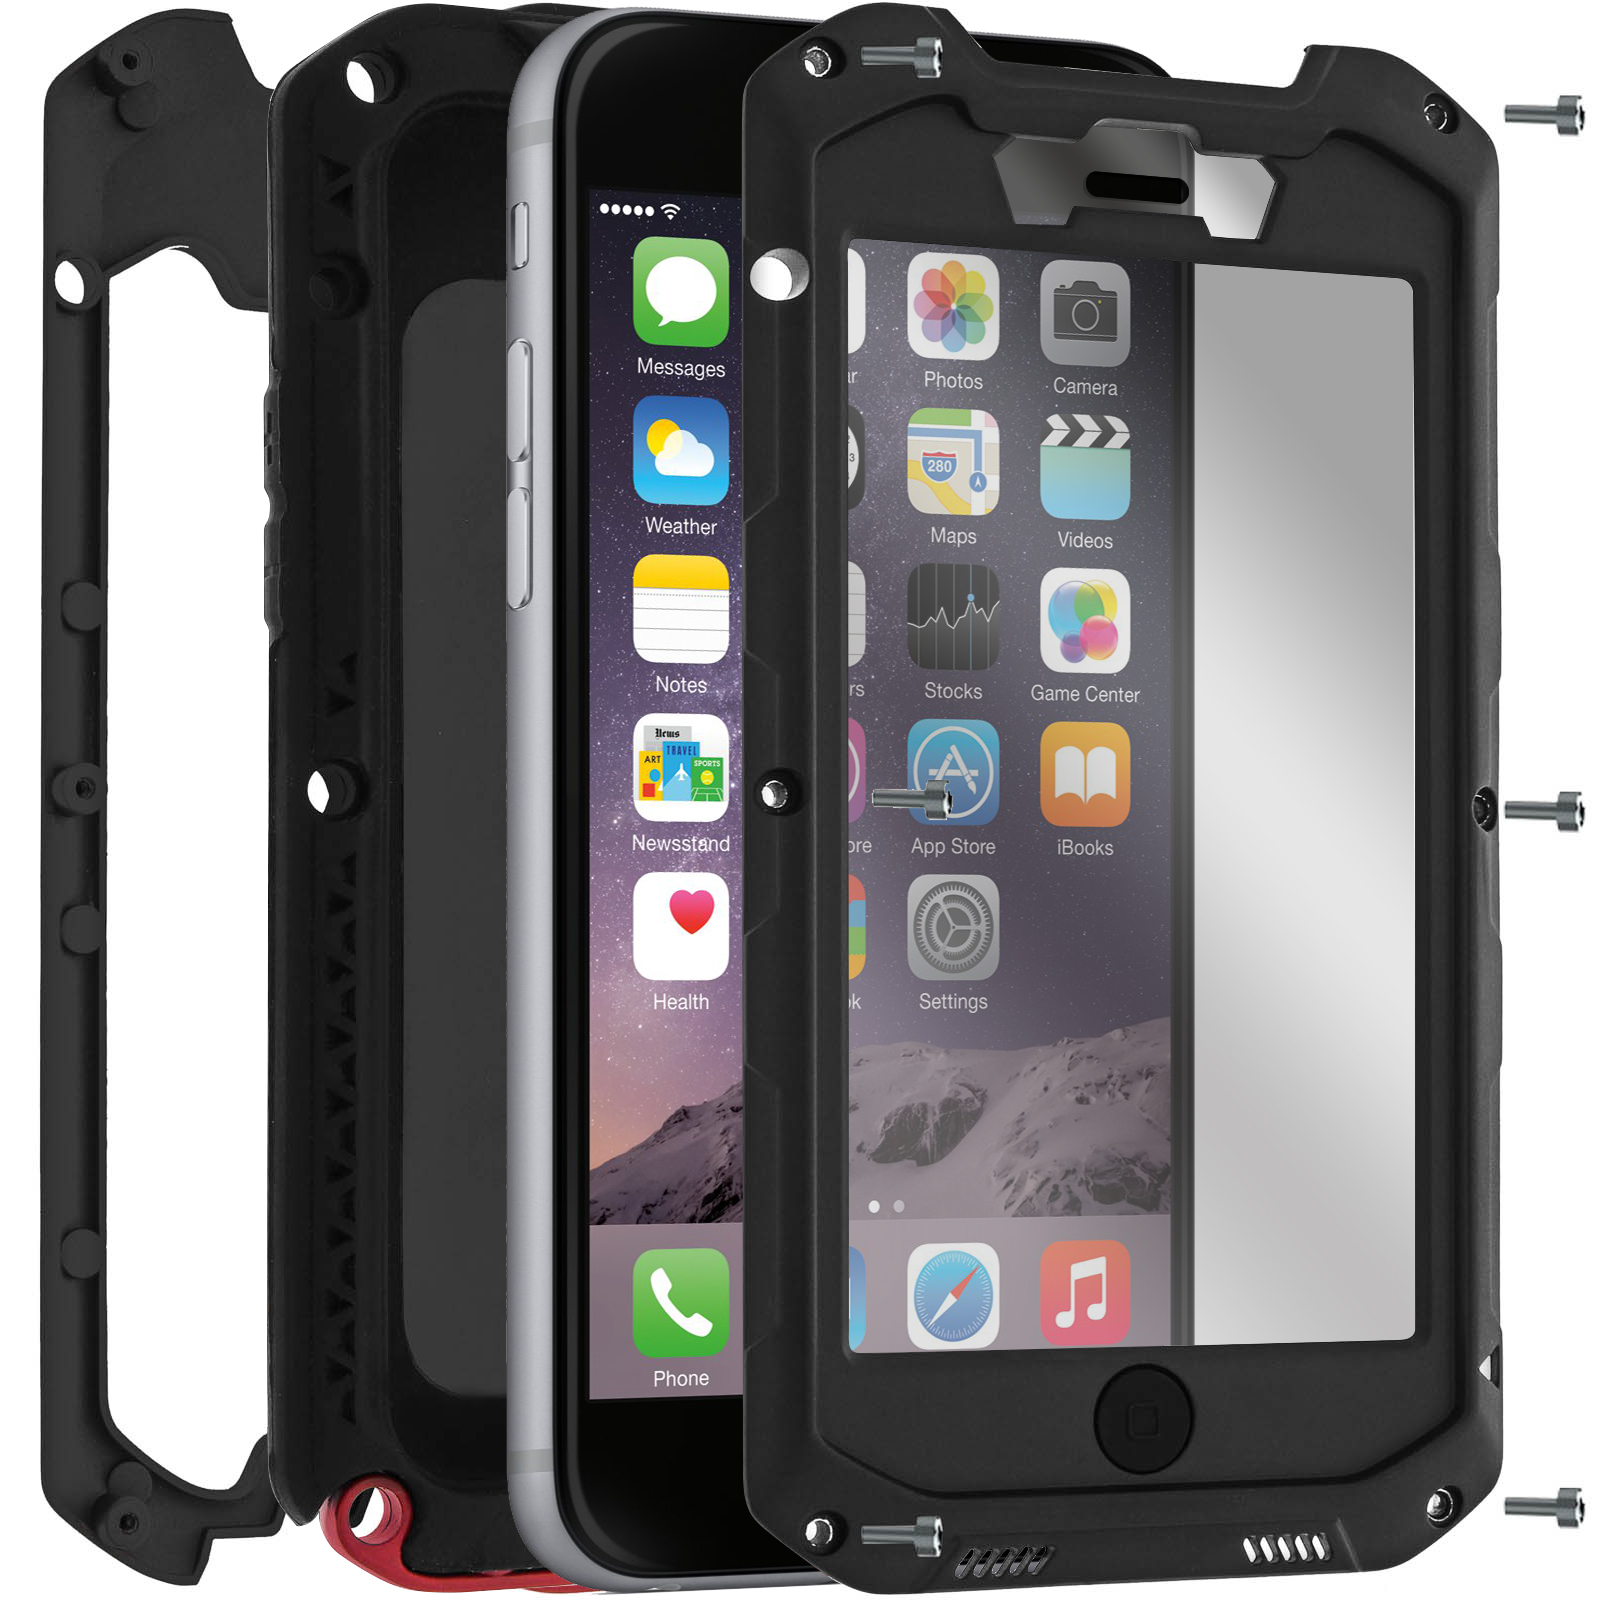 coque iphone 6 recouvre tout